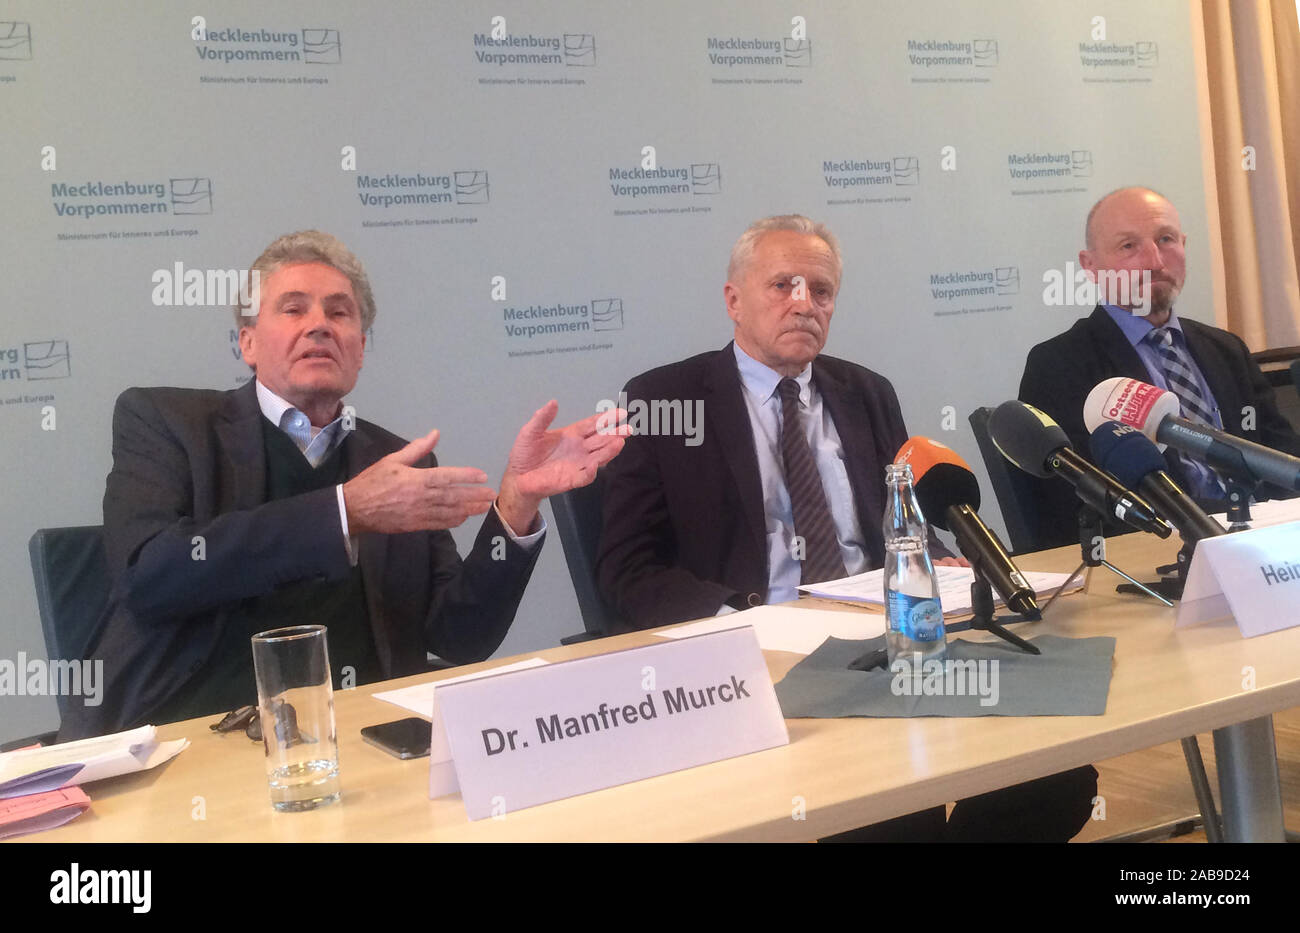 Schwerin, Germany. 26 November 2019, Mecklenburg-Western Pomerania, Schwerin: The members of the Expert Commission (l-r), Manfred Murck, sociologist at Johann Wolfgang Goethe University Frankfurt am Main, Heinz Fromm, President of the former Federal Office for the Protection of the Constitution, and Friedrich Eichele, President of the Directorate of the Federal Readiness Police a. D., were all members of the Expert Commission. D. Credit: dpa picture alliance/Alamy Live News Stock Photo